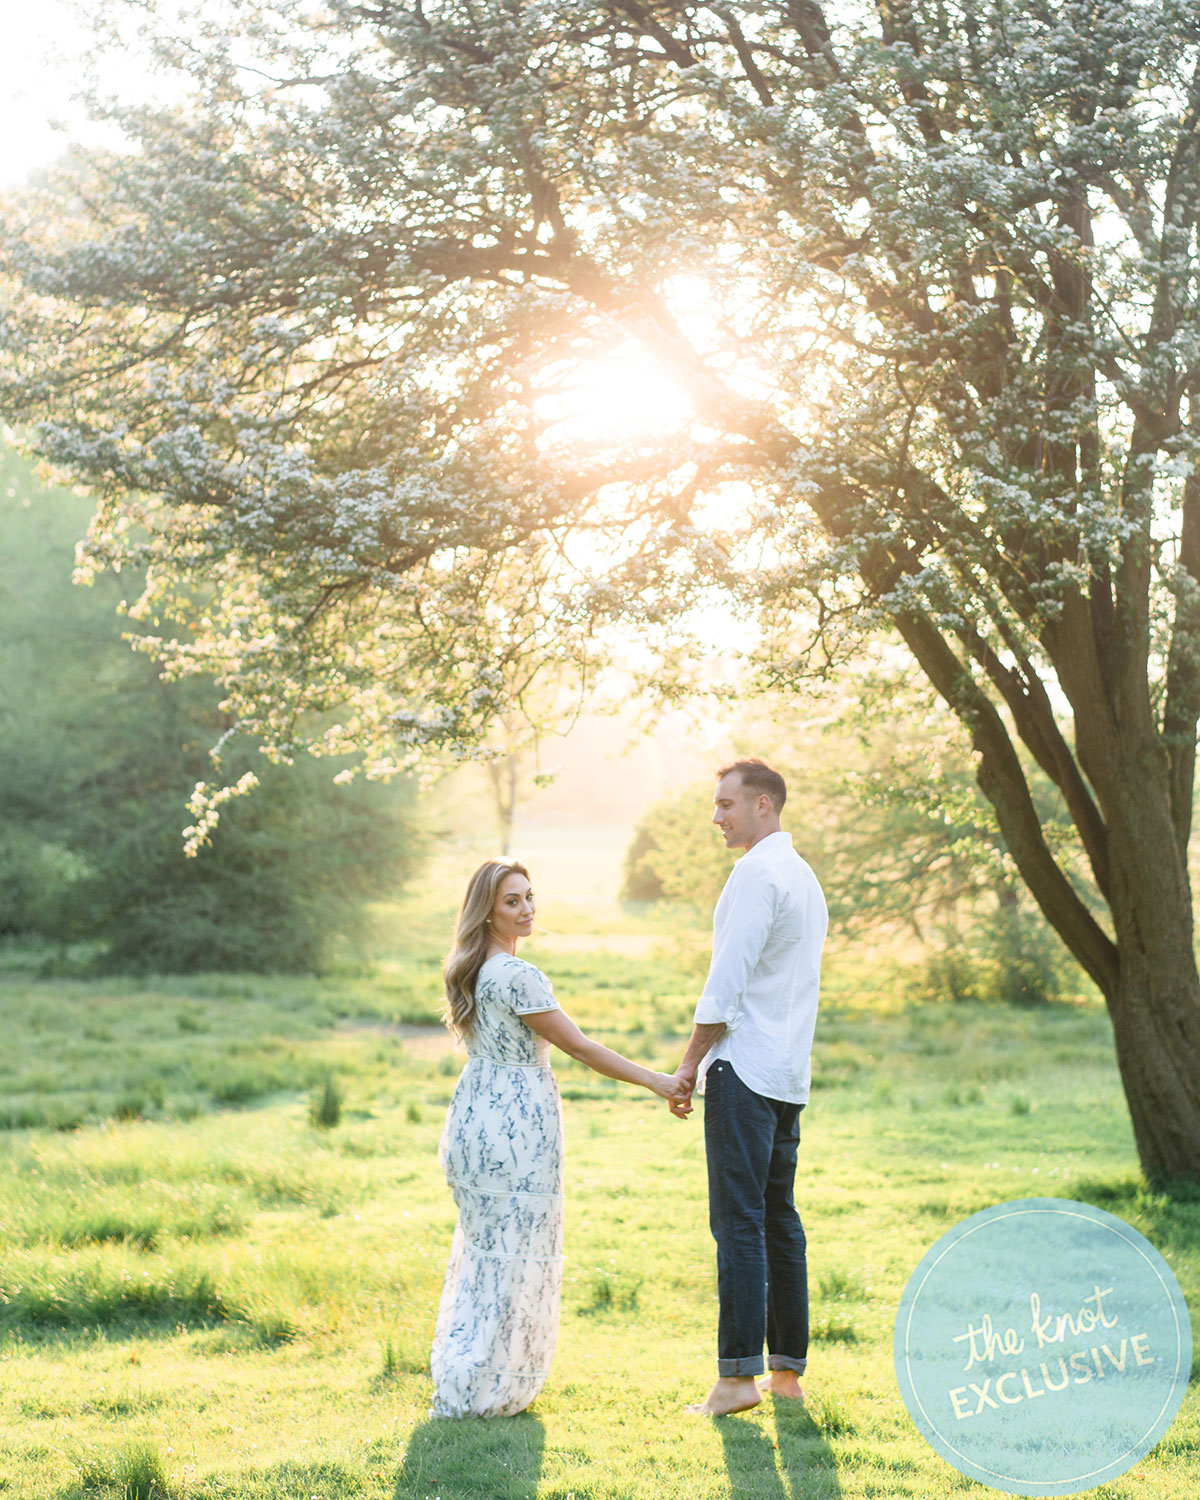 The Bachelorette's Marcus Grodd shares his proposal story with The Knot after announcing his engagement to Ally Lutar in May 2017. (Credit: Taylynne Mitschke / Taya Photography)